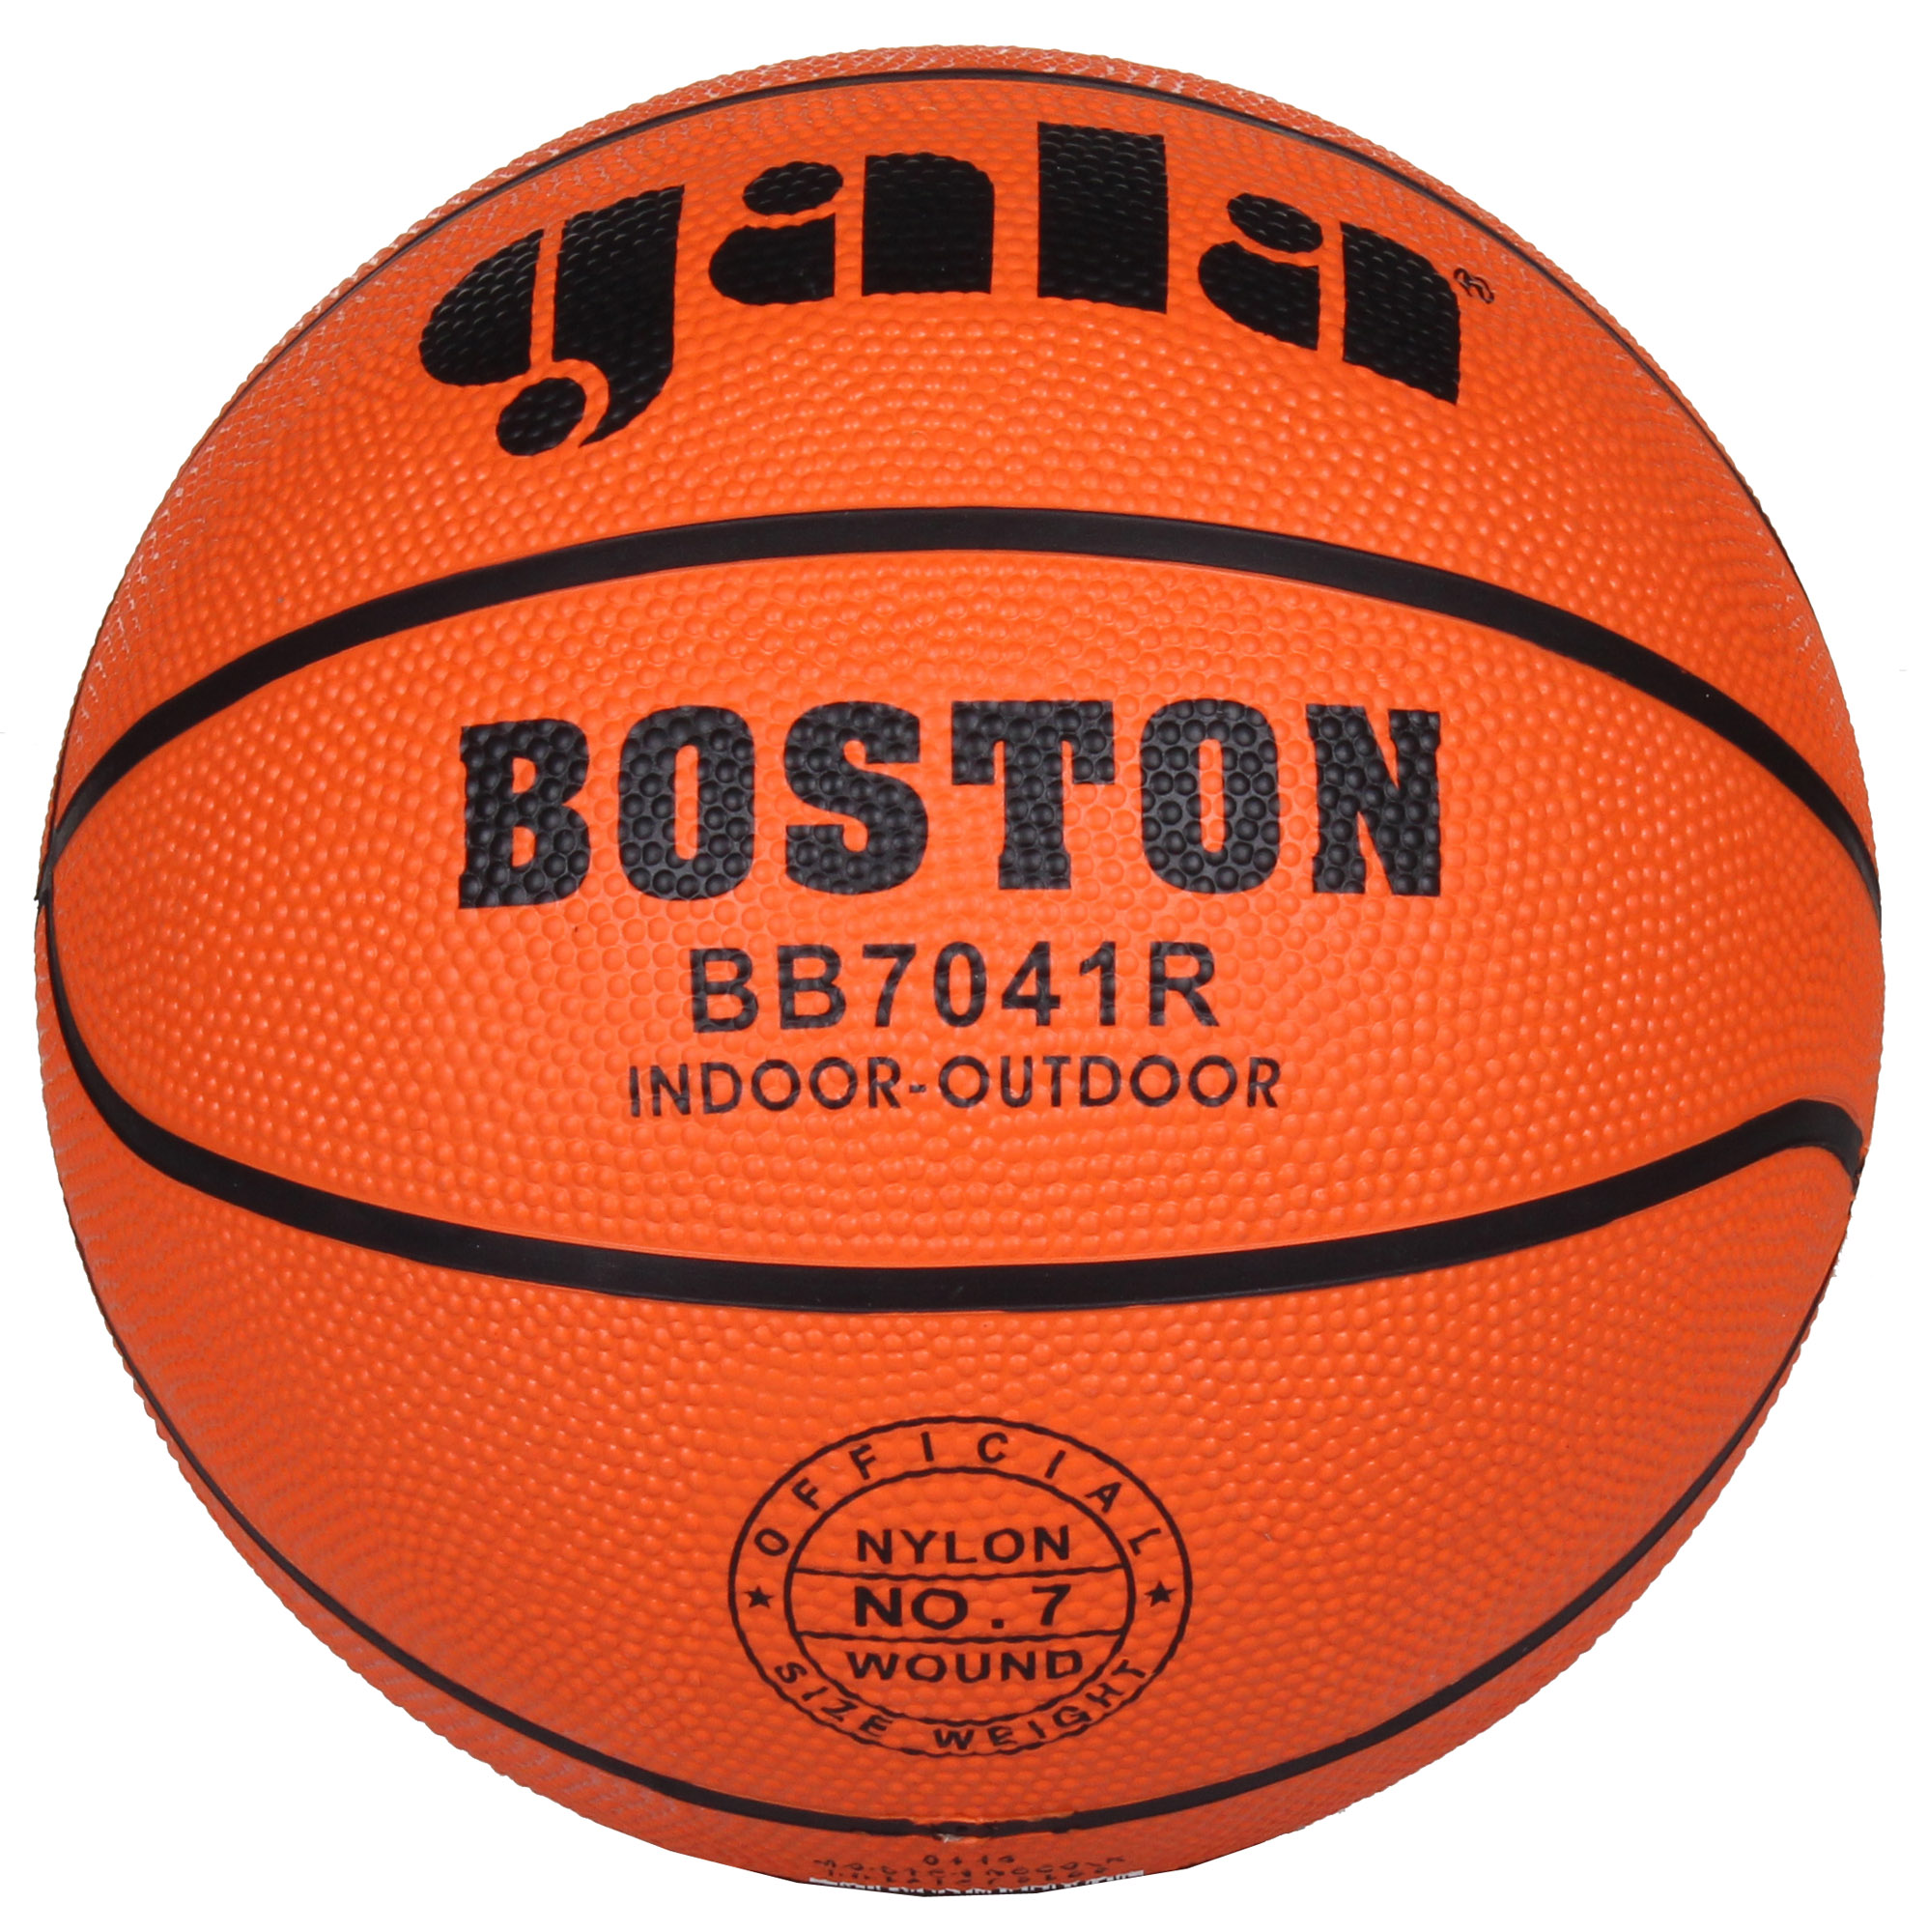 Gala Boston BB7041R basketbalová lopta č. 7